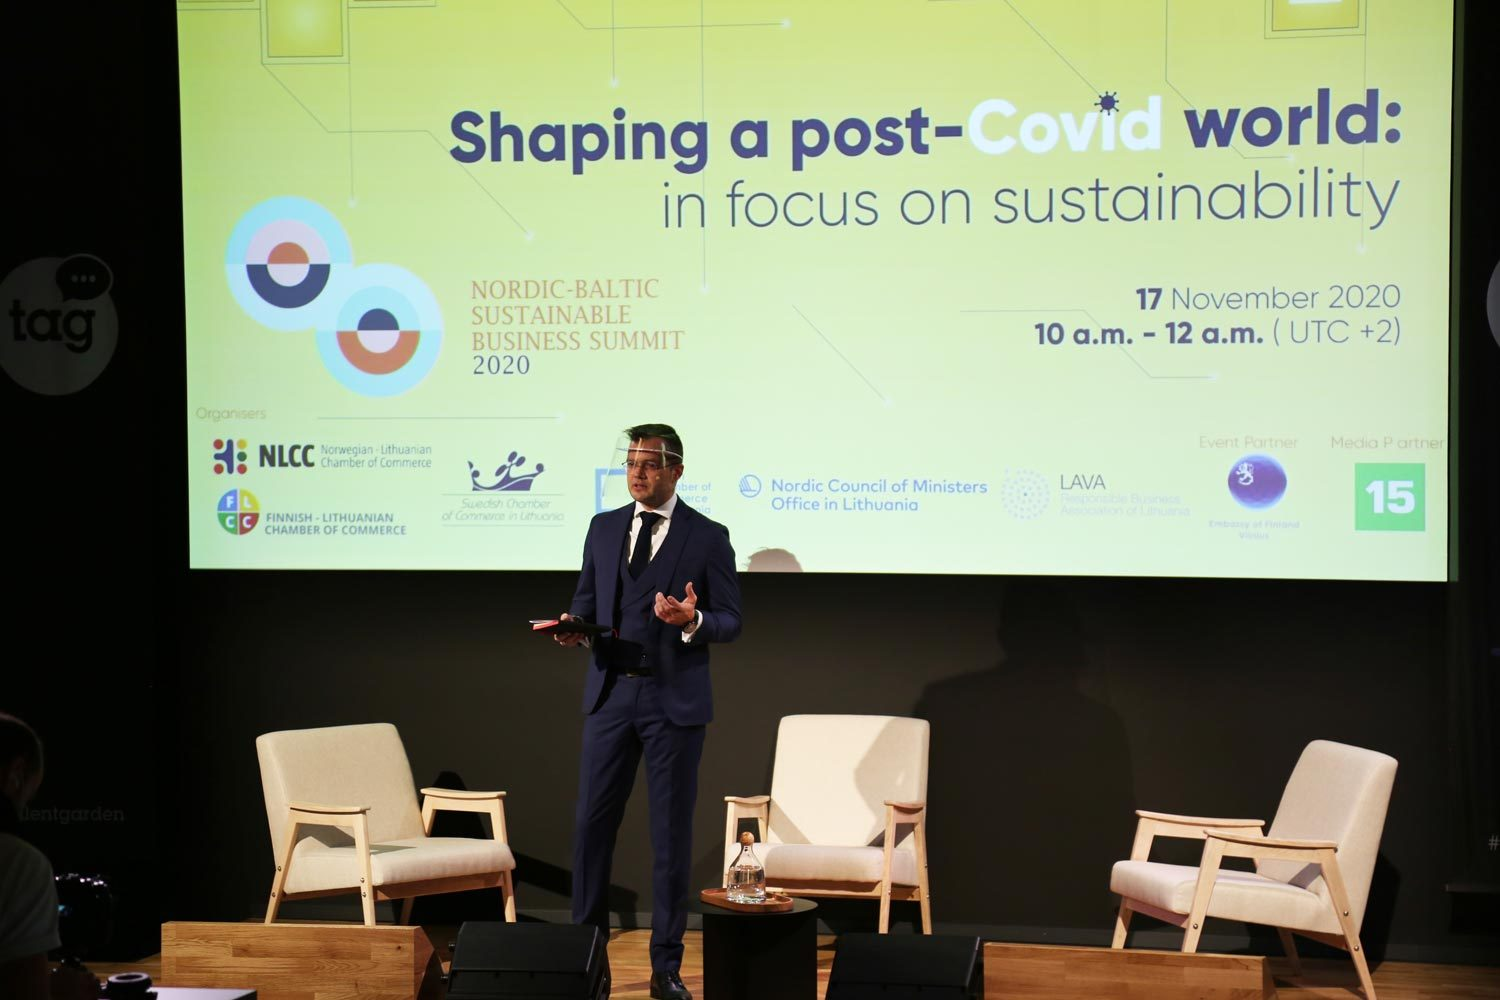 Nordic-Baltic-Sustainable-Business-Summit-2020-14